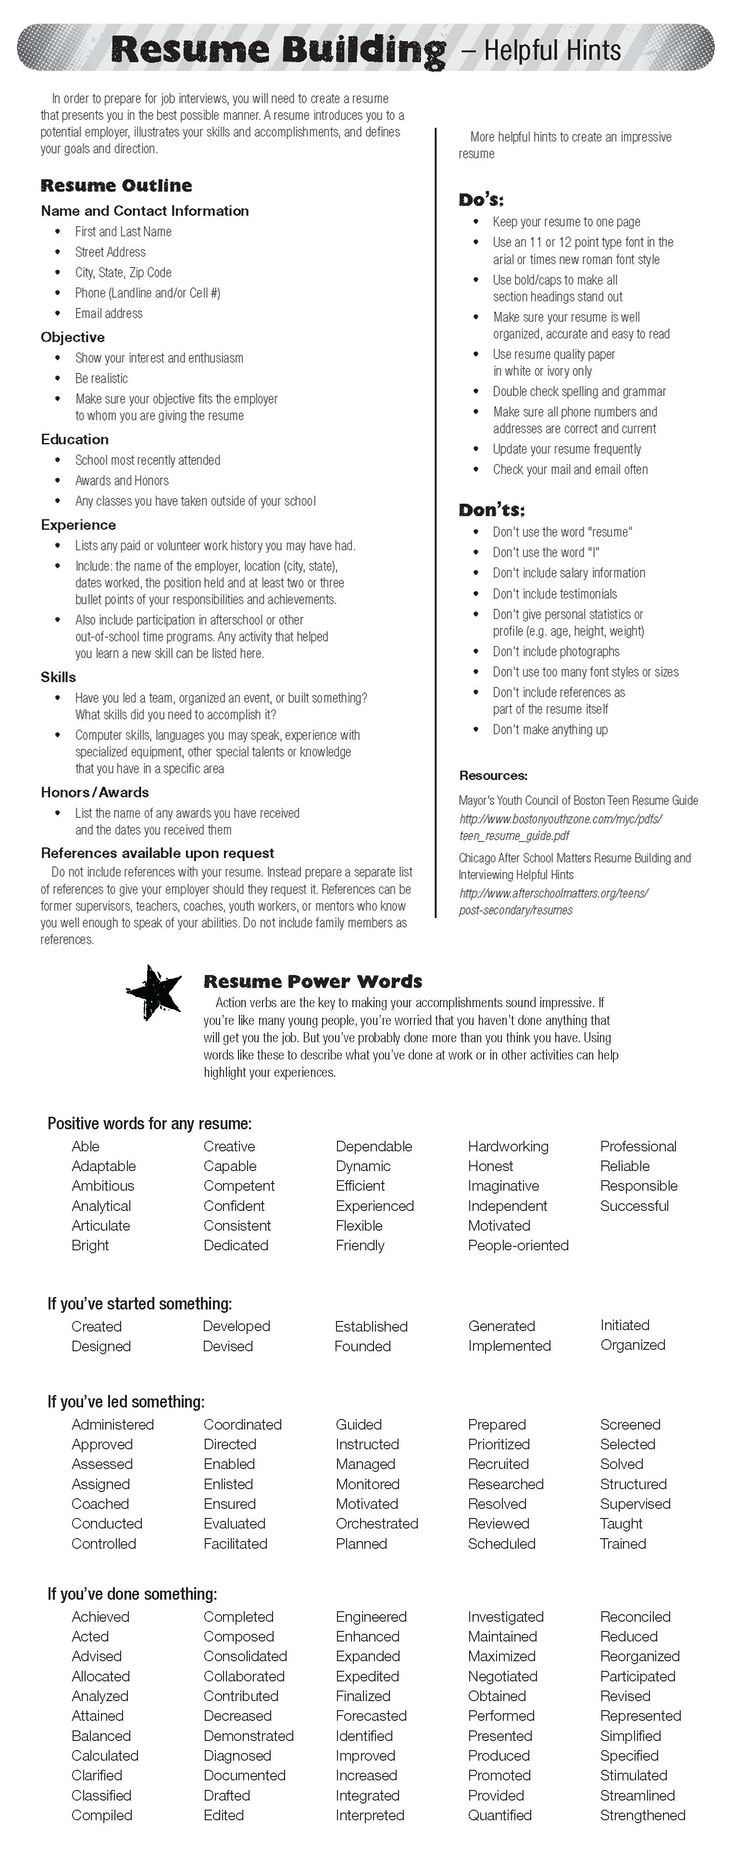 Opposenewapstandardsus  Pleasant  Ideas About Resume On Pinterest  Cv Format Resume Cv And  With Great  Ideas About Resume On Pinterest  Cv Format Resume Cv And Resume Templates With Awesome Free Simple Resume Templates Also Teacher Resume Cover Letter In Addition Writing Resume Objective And Nurse Practitioner Resume Examples As Well As Emergency Room Nurse Resume Additionally Communication On Resume From Pinterestcom With Opposenewapstandardsus  Great  Ideas About Resume On Pinterest  Cv Format Resume Cv And  With Awesome  Ideas About Resume On Pinterest  Cv Format Resume Cv And Resume Templates And Pleasant Free Simple Resume Templates Also Teacher Resume Cover Letter In Addition Writing Resume Objective From Pinterestcom